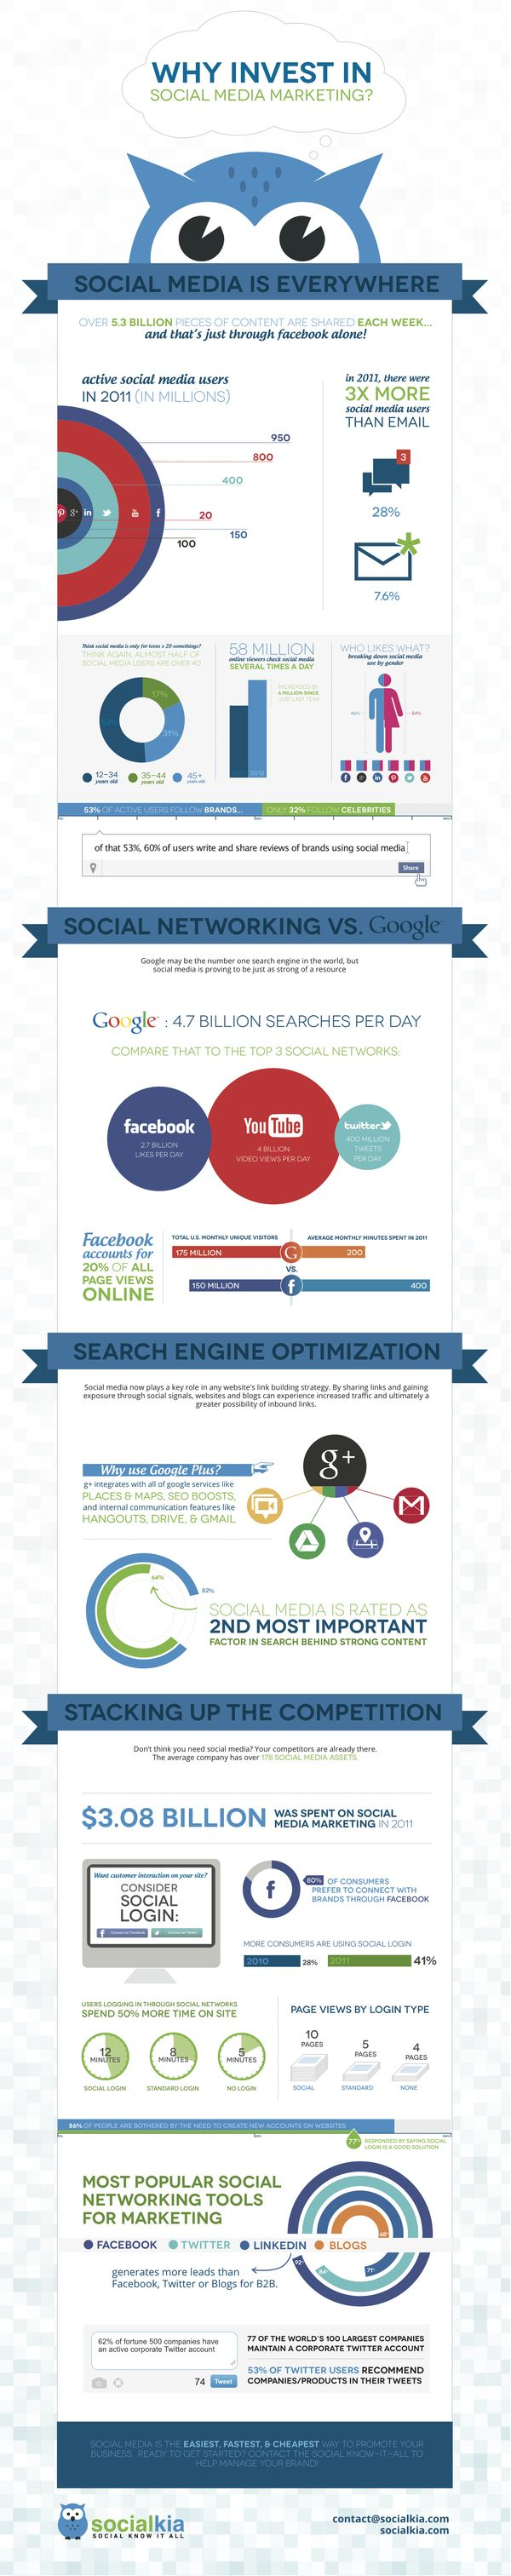 Why Invest in Social Media Marketing? #Infographic